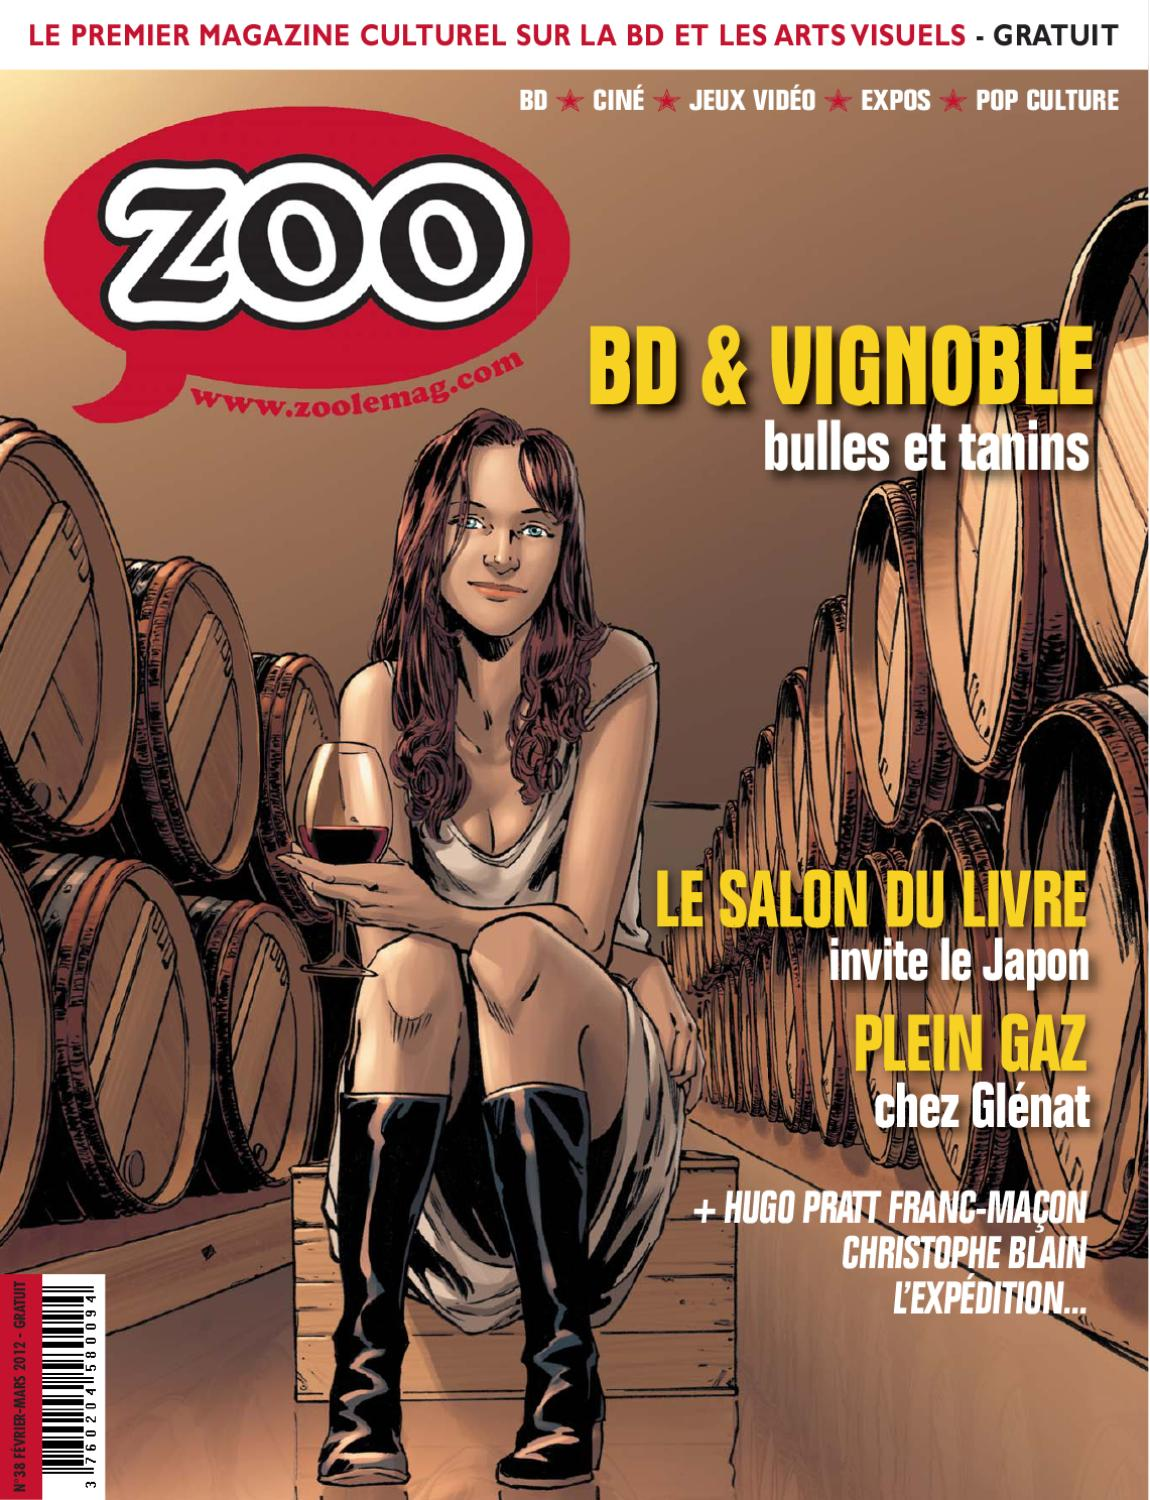 Telecharger Video Feu De Cheminee Gratuit Zoo 38 By Redaction Zoo Issuu